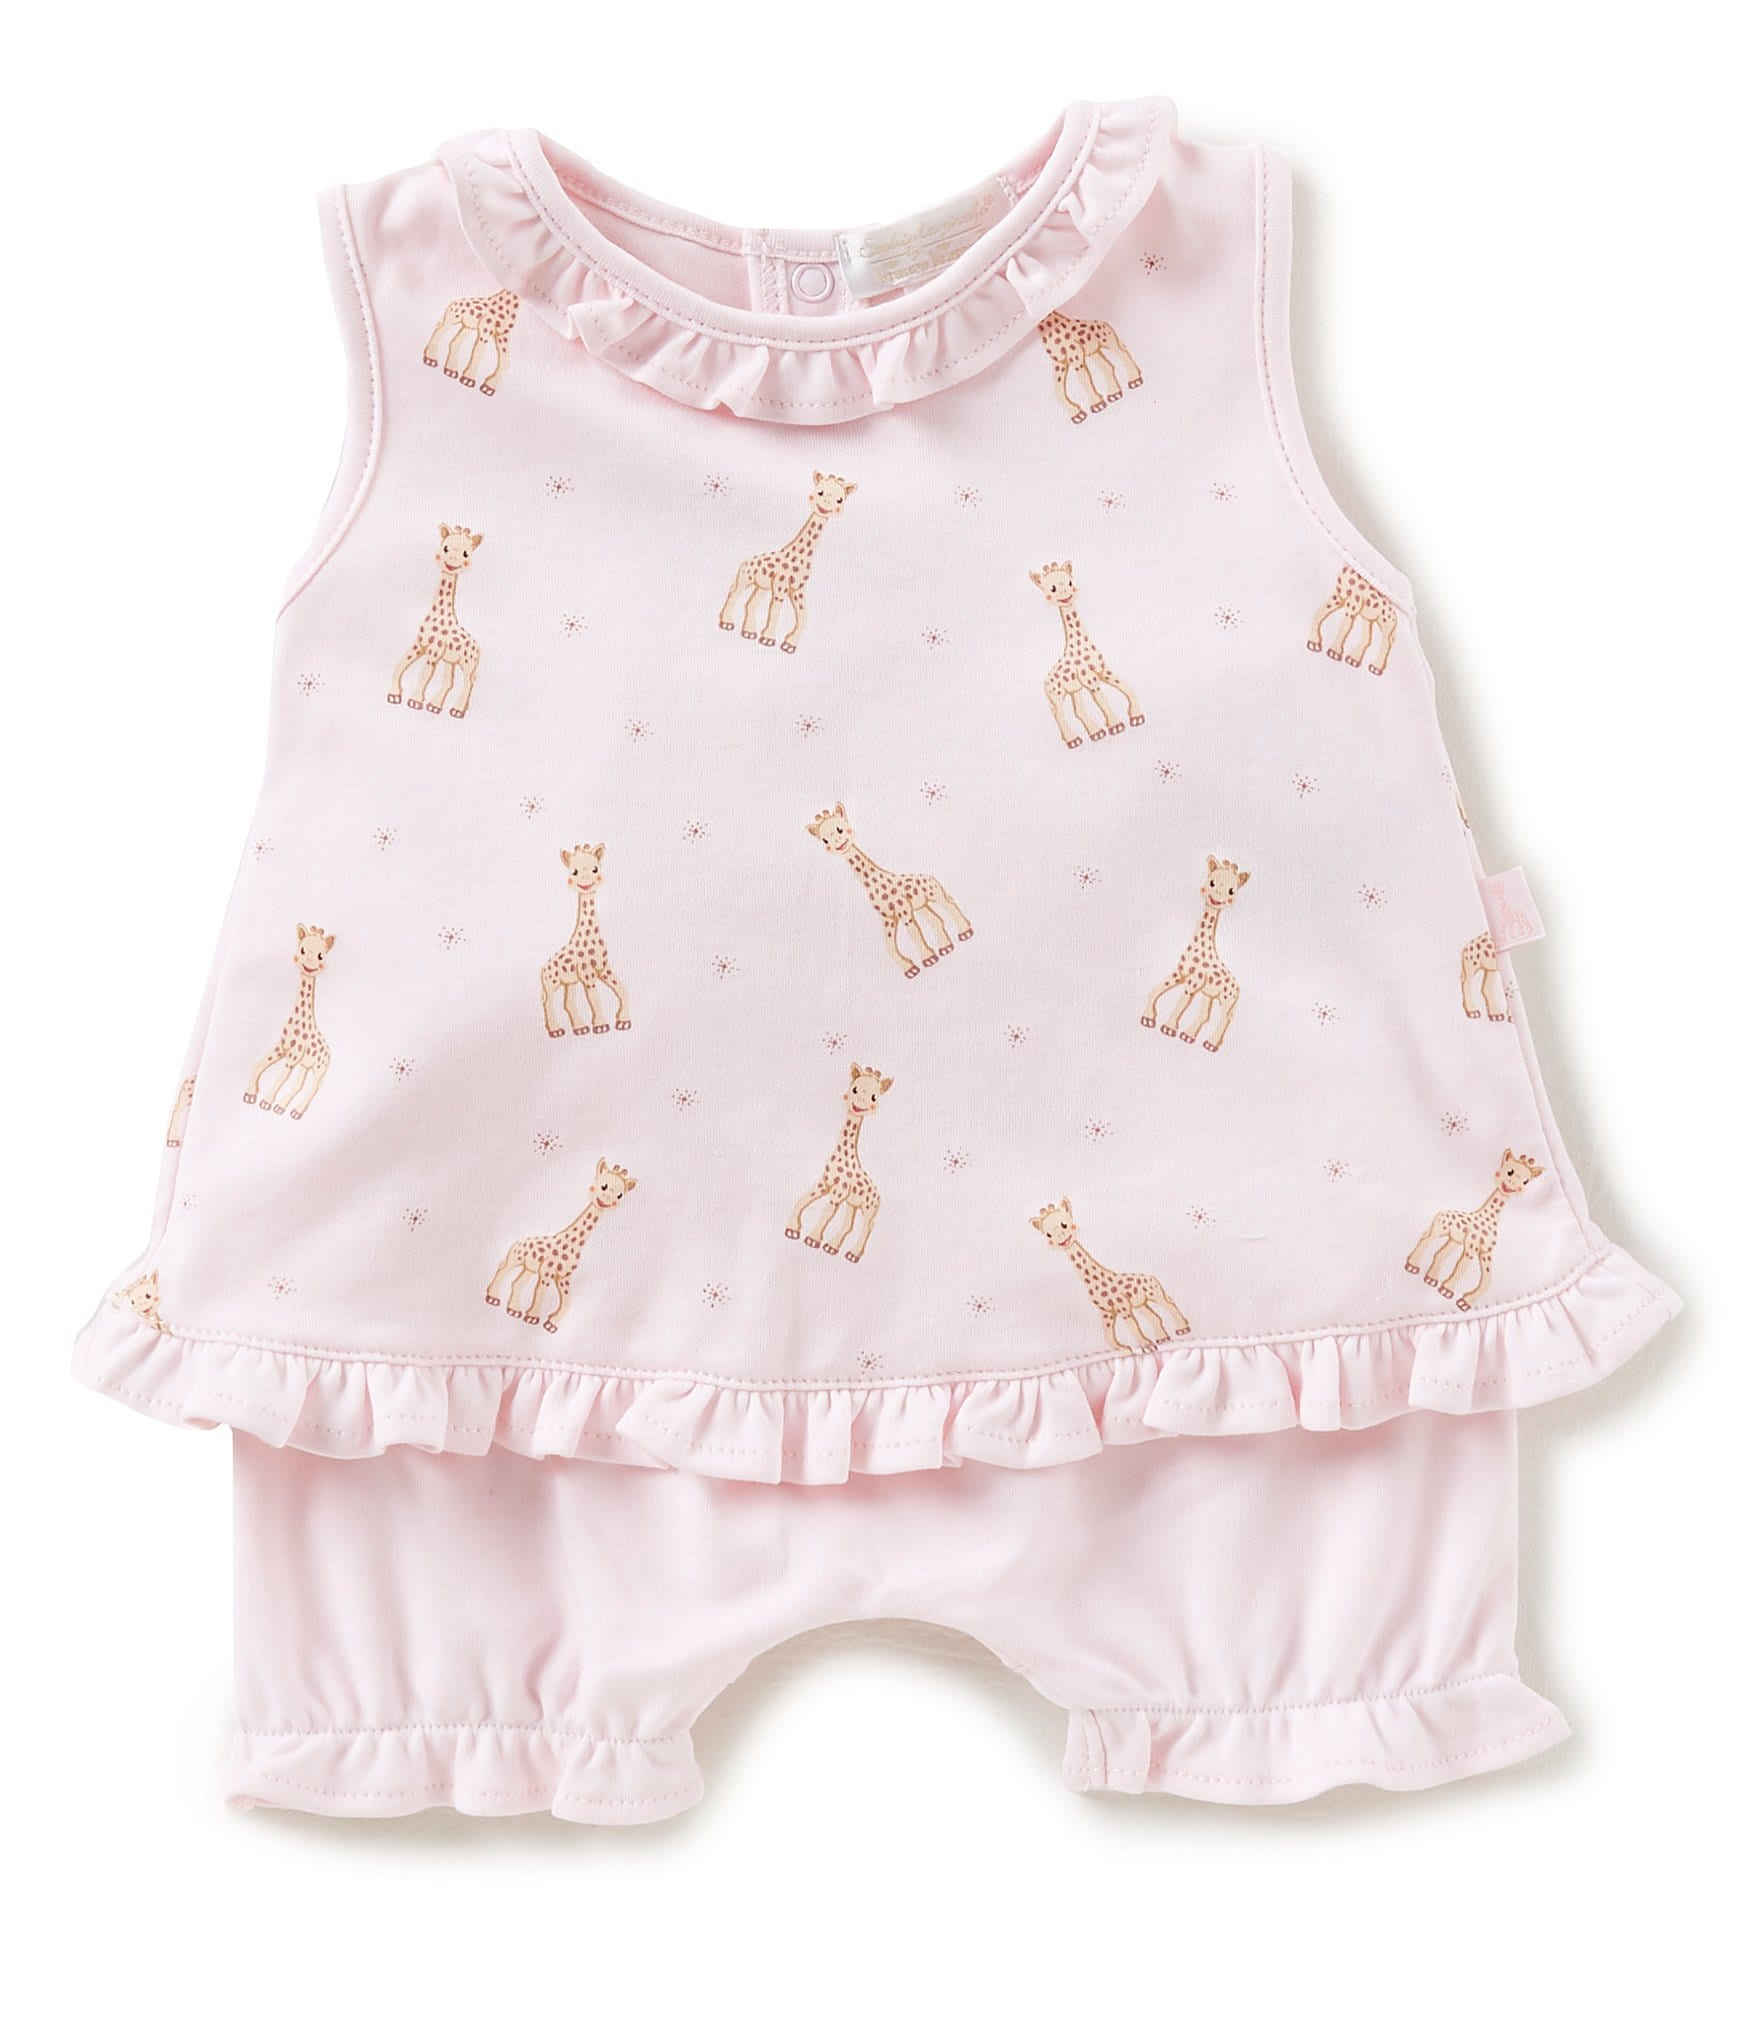 Baby Girl Outfits & Clothing Sets